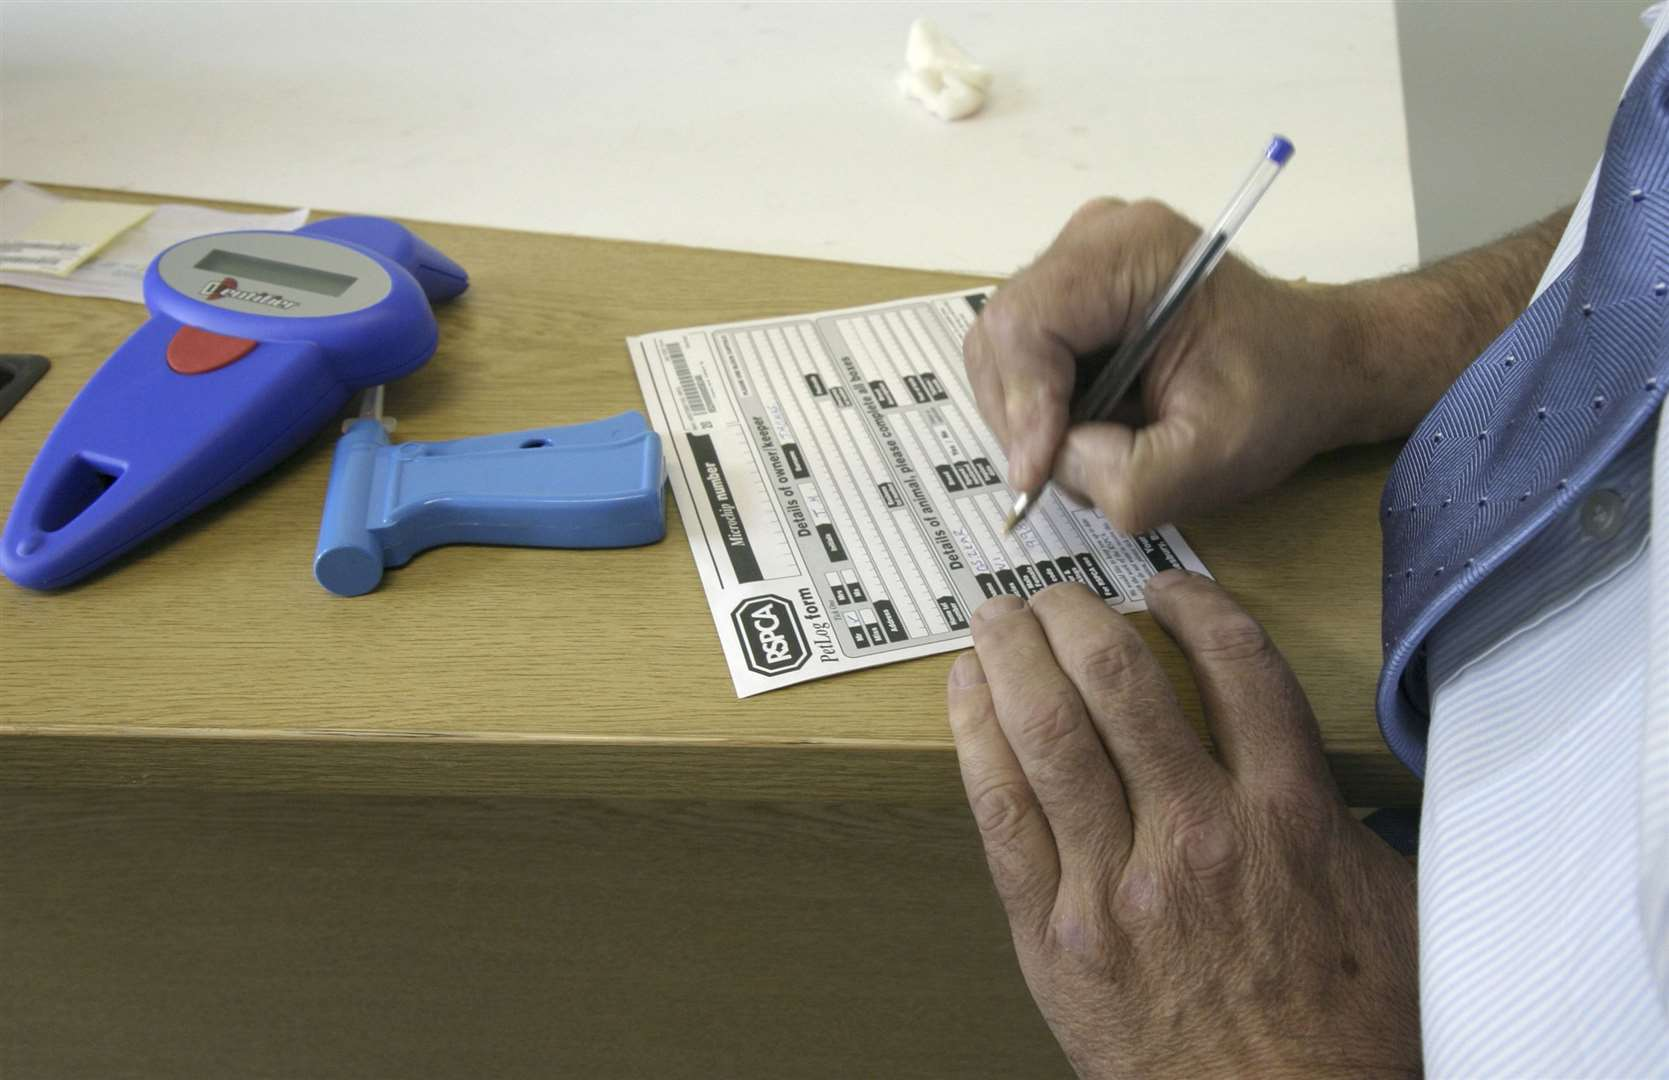 Vets and animal welfare organizations offer a microchip service, among other things, but owners need to make sure the contact details are up to date